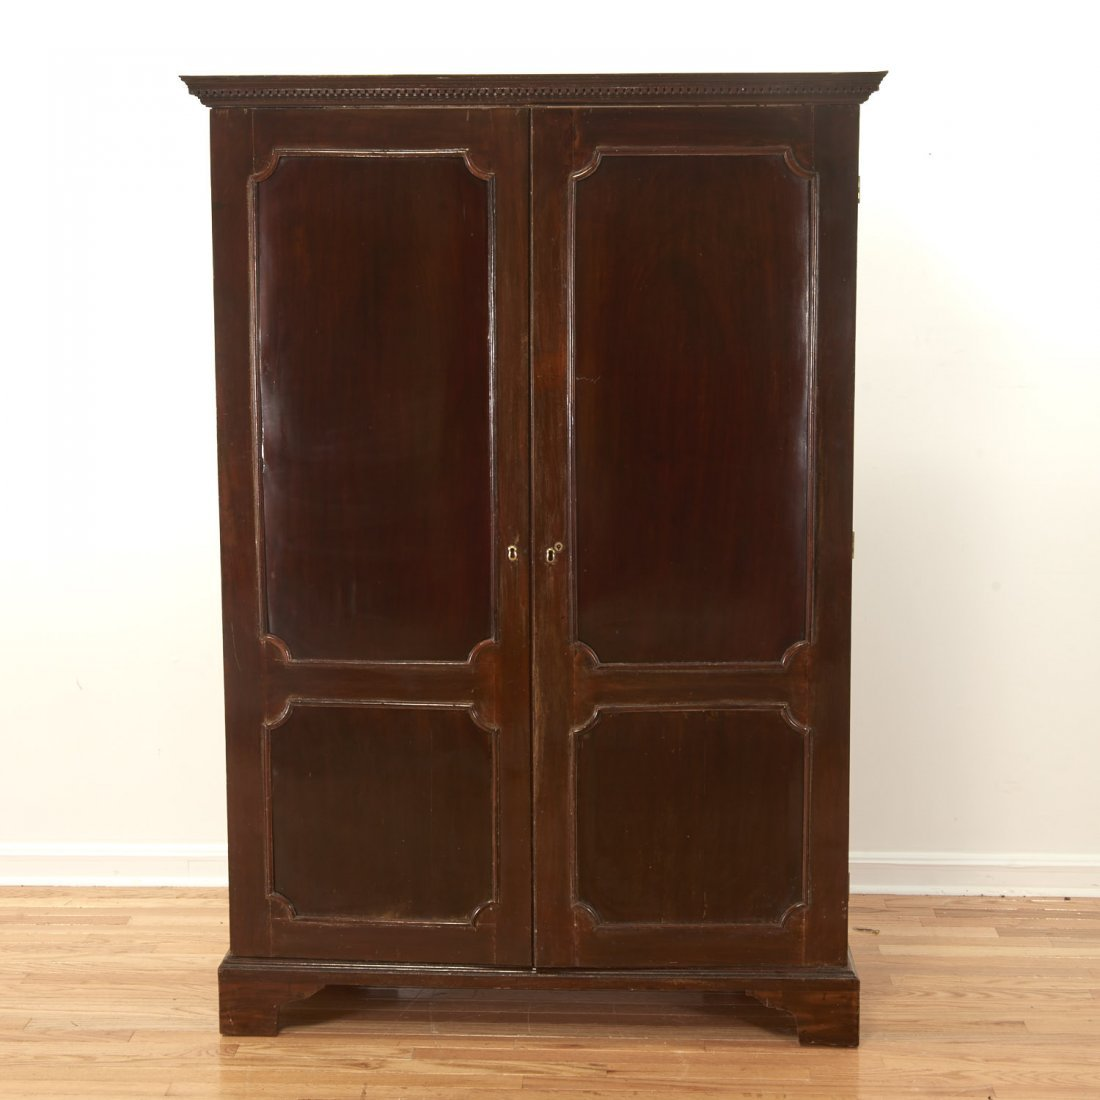 George III mahogany collector's cabinet - 2